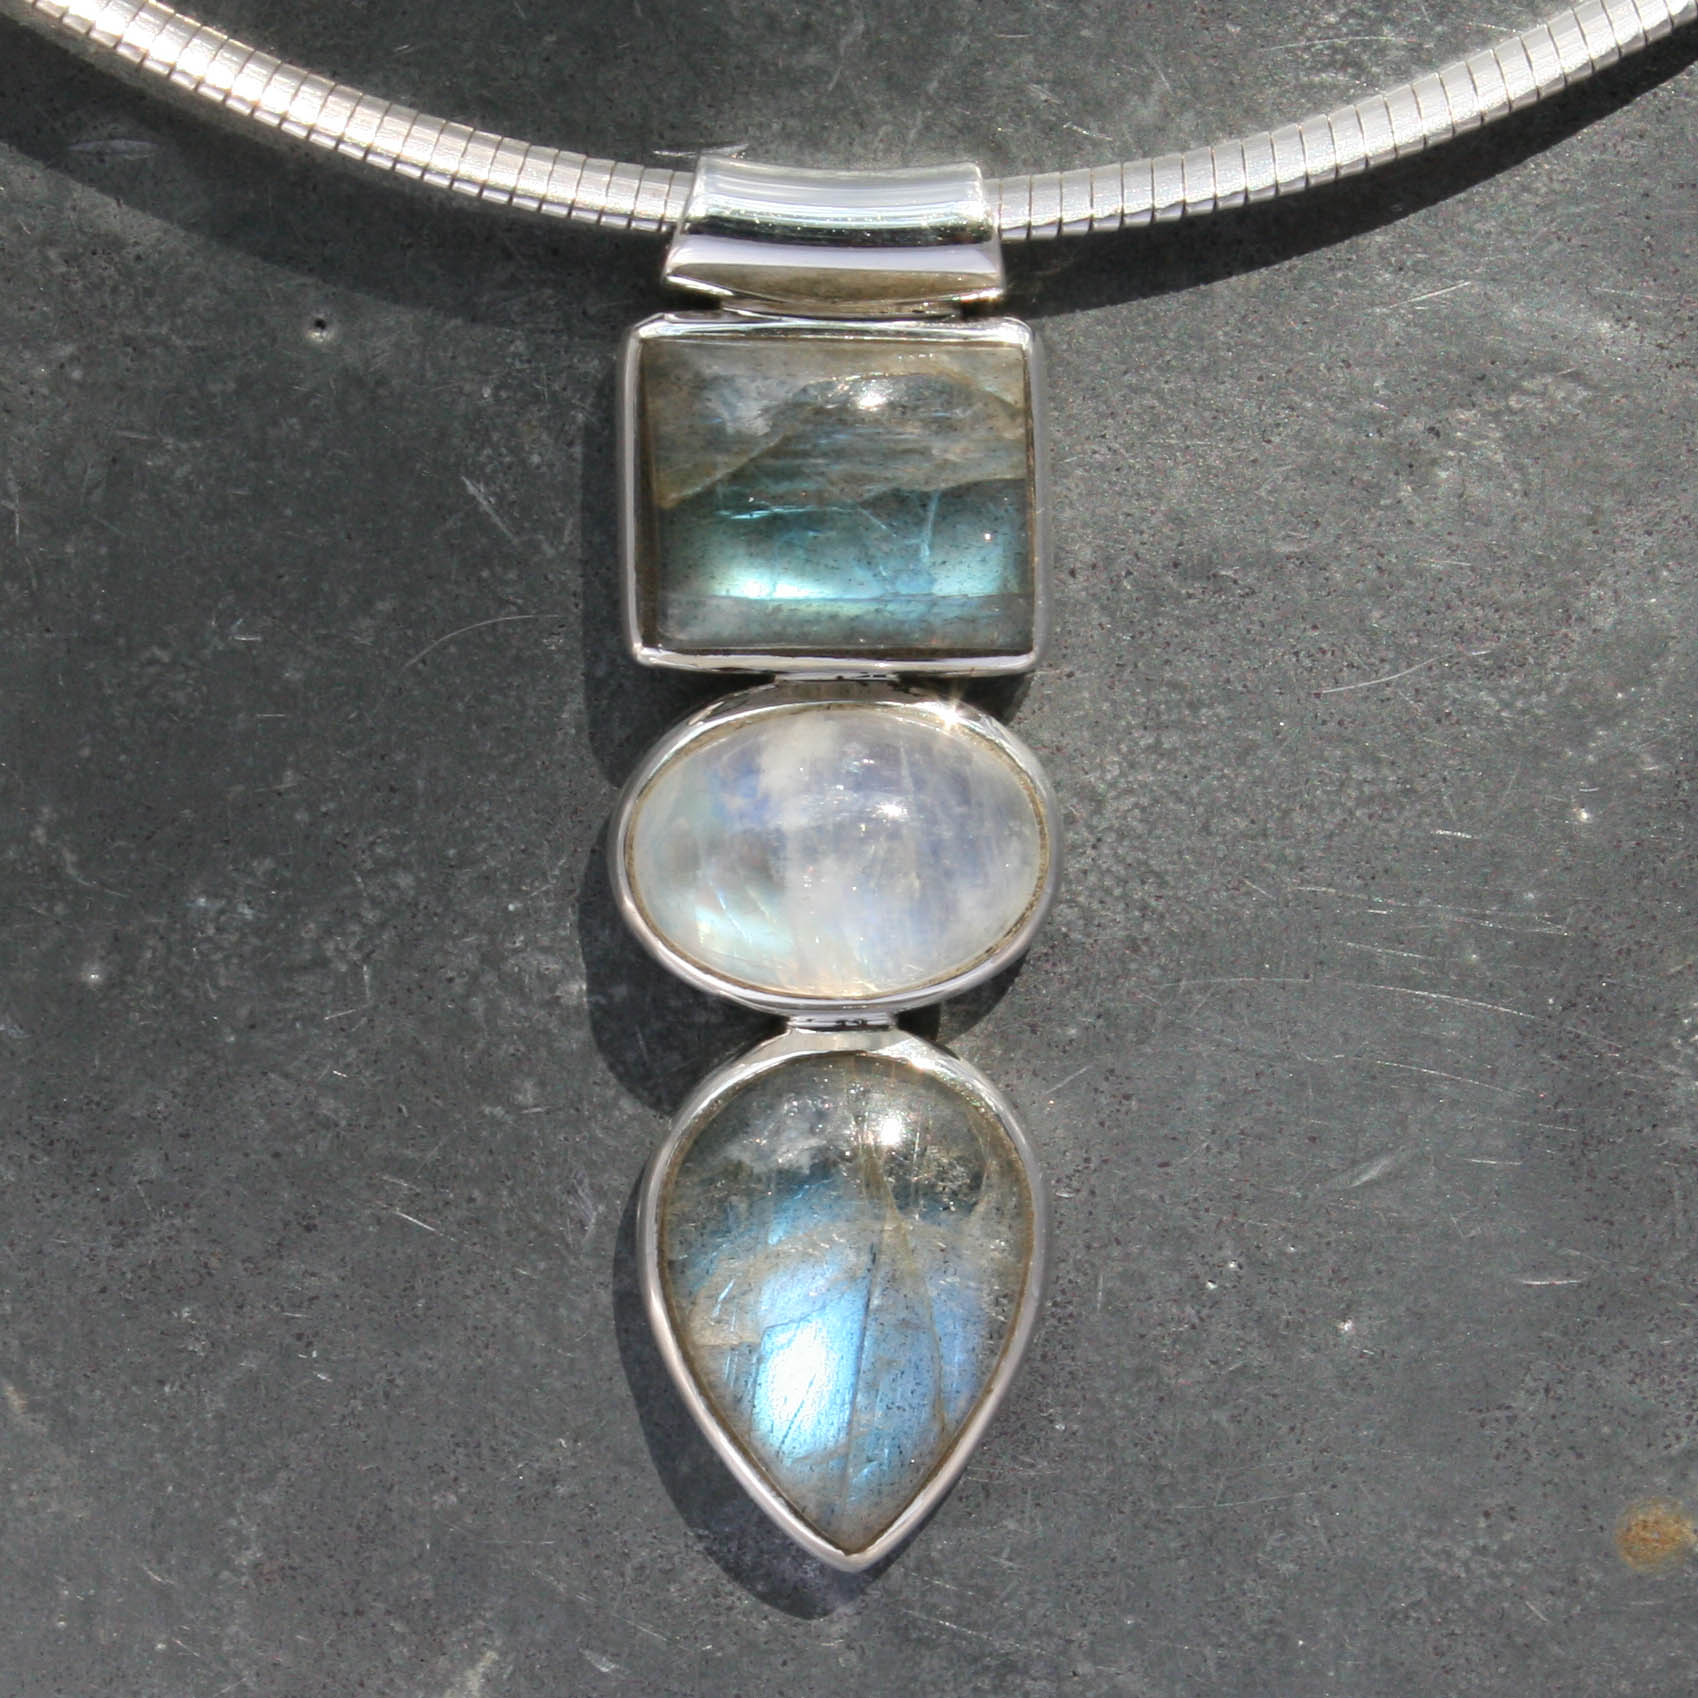 love pendant moonstone the product of moon put feminine img necklace stone jewelry rainbow labradorite